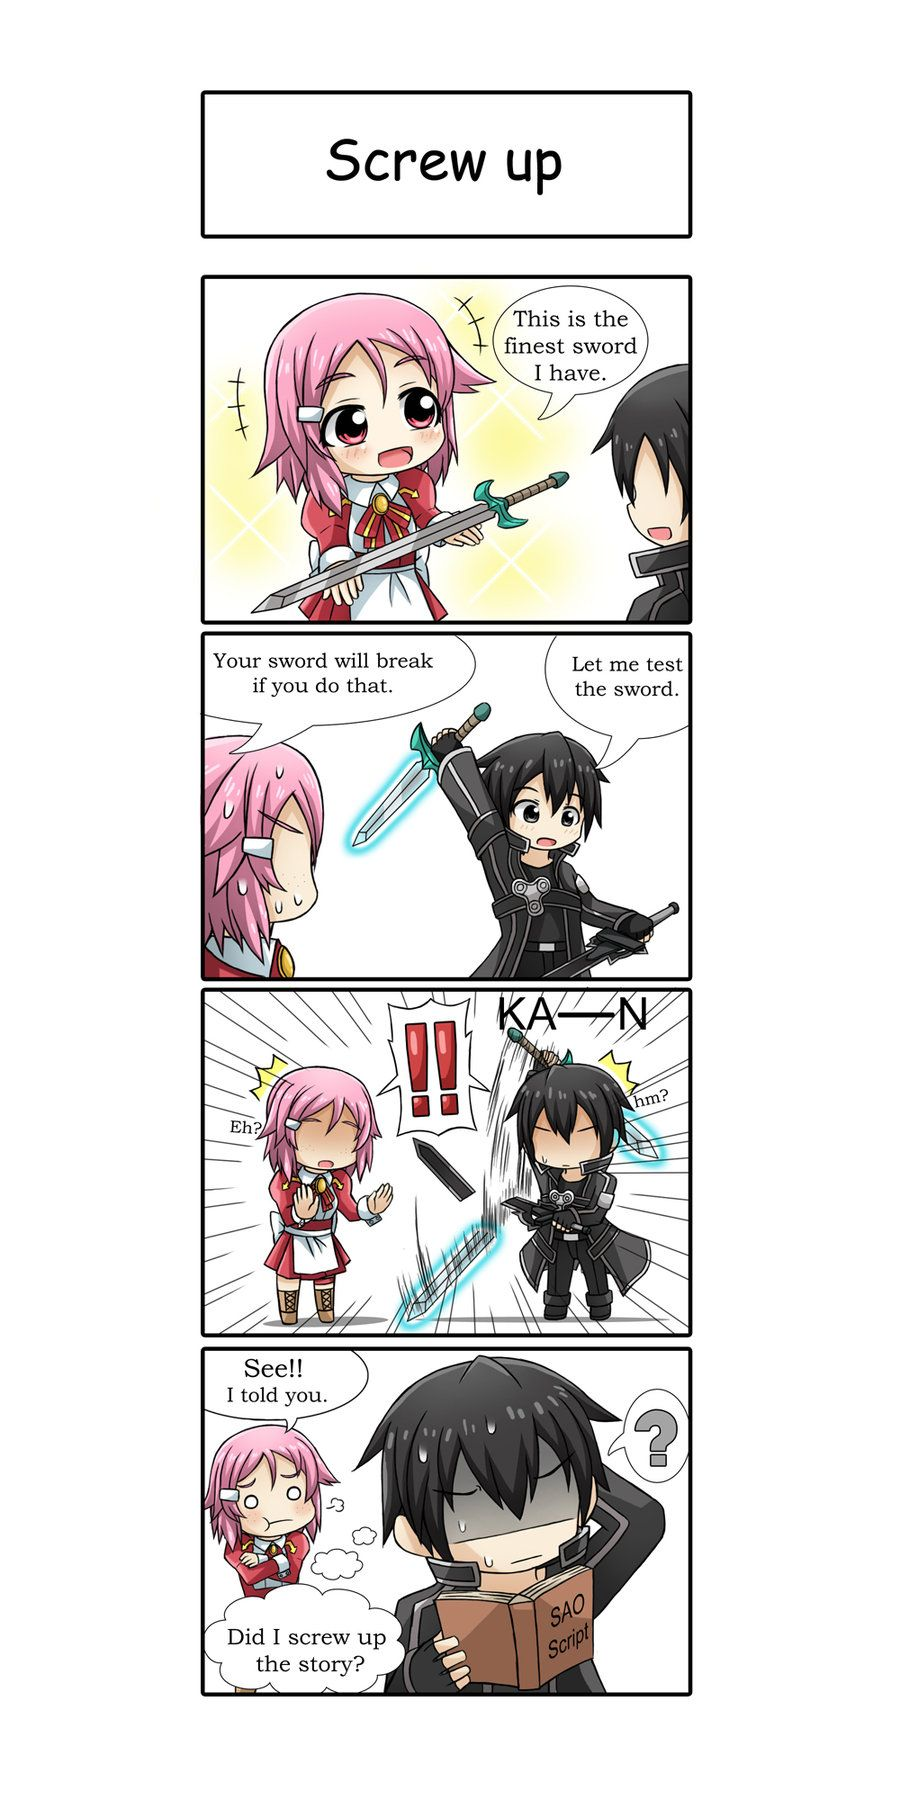 God Kirito when someone tells you that's their best sword you don't test their level 40 someodd blade against like a level 74 wHAT DID YOU THINK WAS GONNA HAPPEN?!?